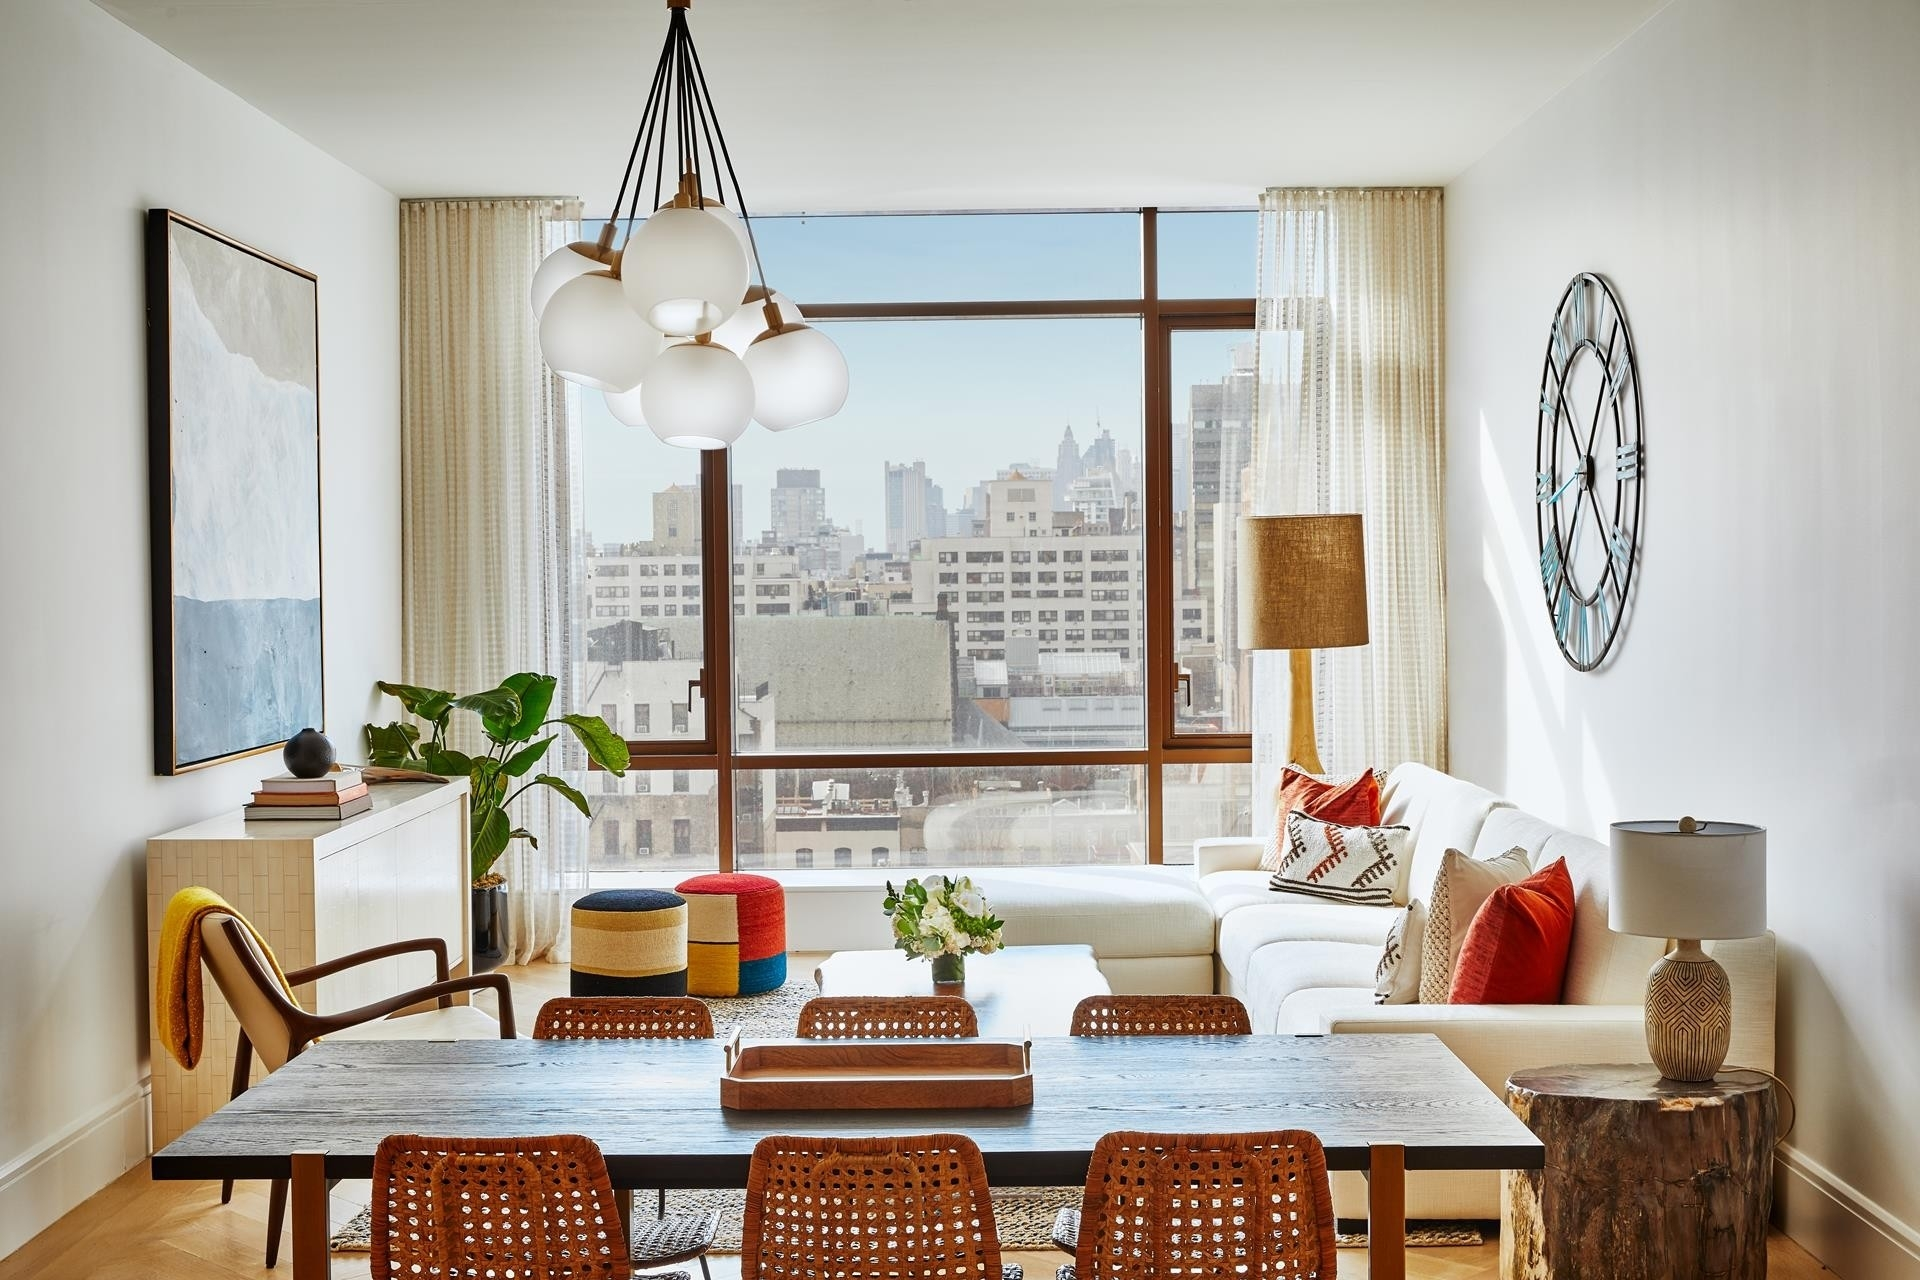 Condominium for Sale at Gramercy Square, 215 East 19th St, 9A Gramercy Park, New York, NY 10003